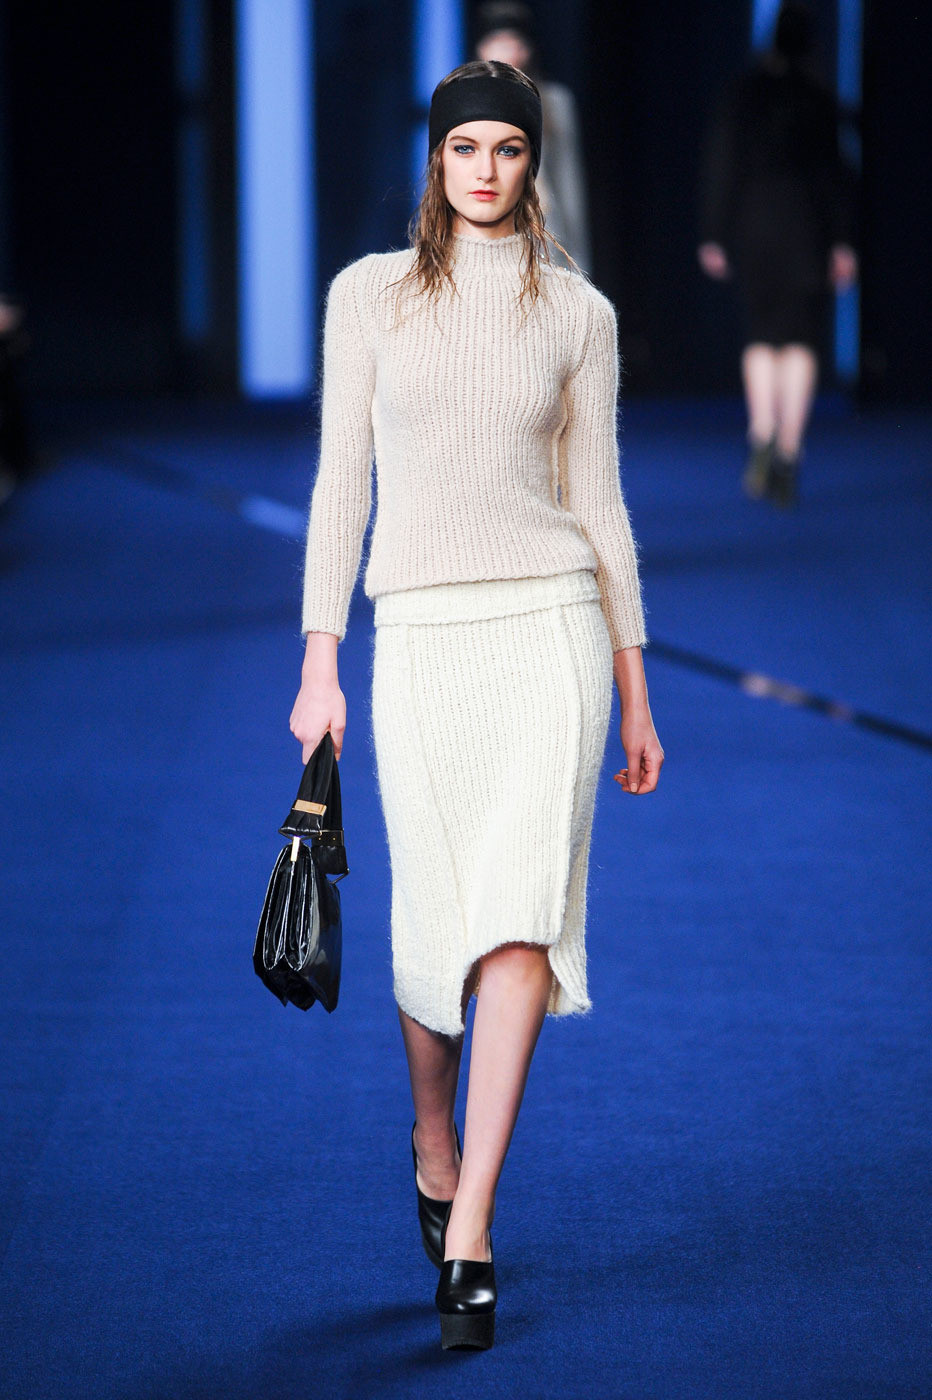 Sonia Rykiel Fall/Winter 2012 campaign / DIY idea for ribbed knit pencil skirt inspired by Sonia Rykiel FW 2012 collection via fashioned by love / british fashion blog